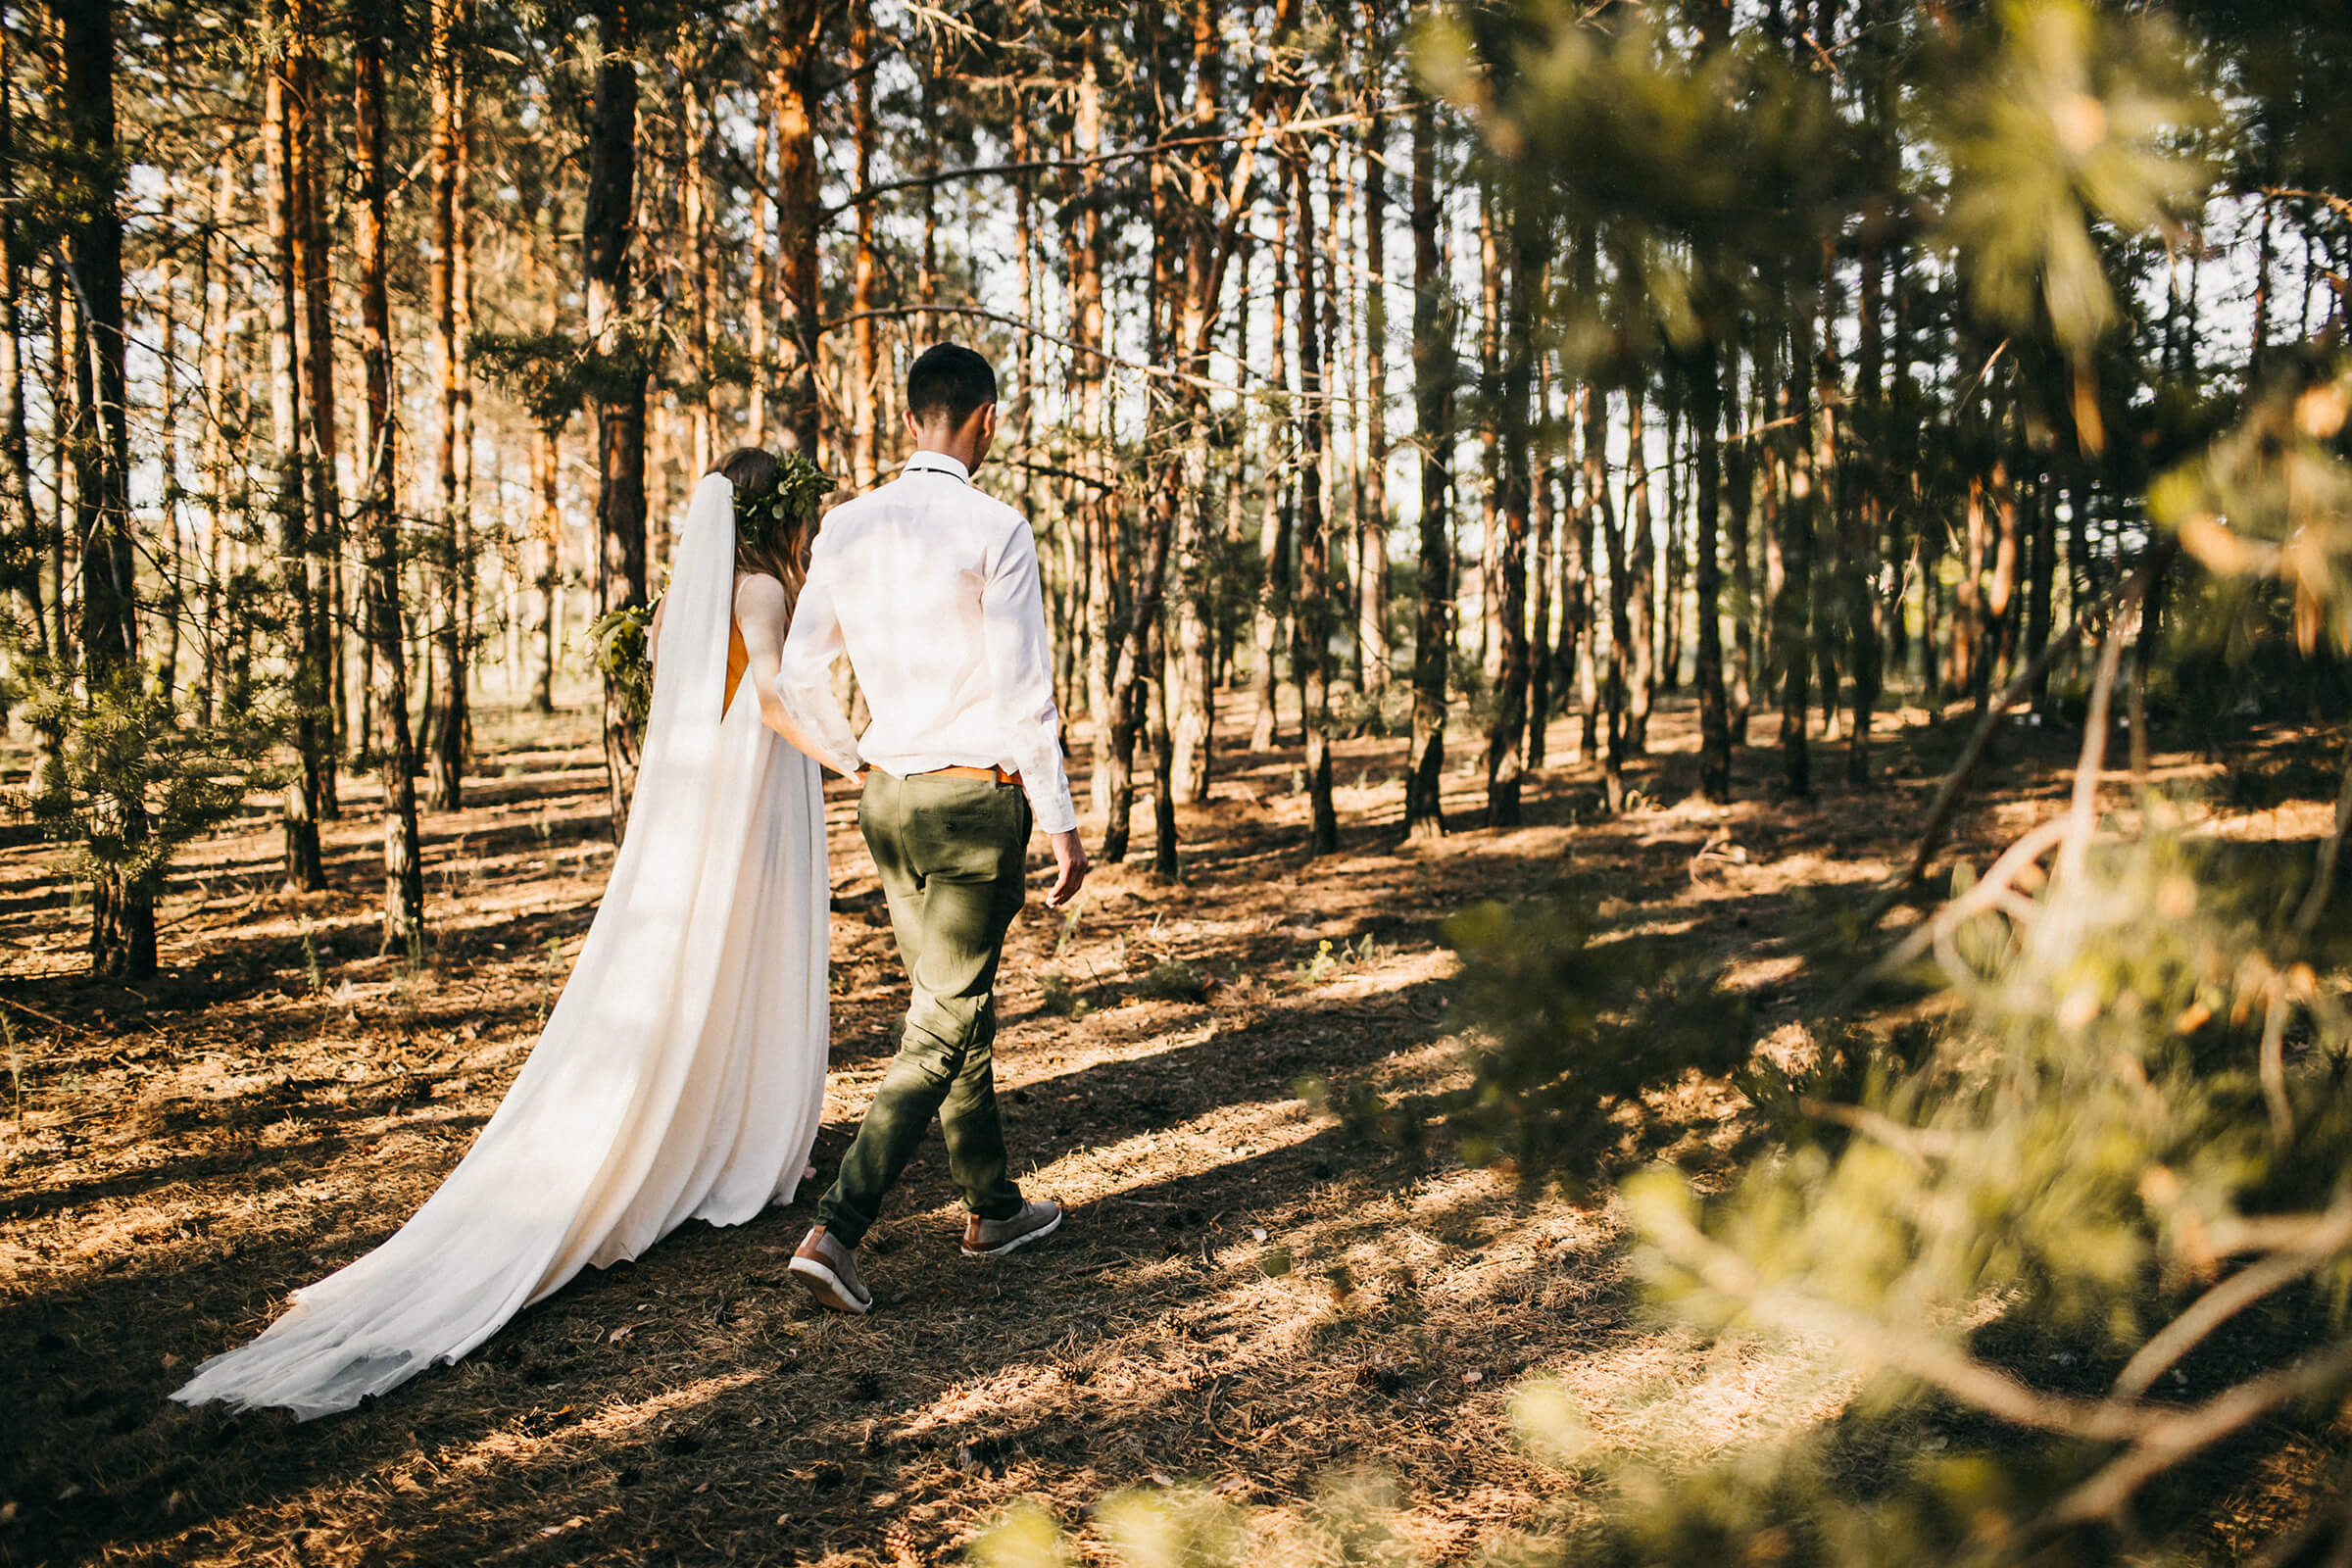 """WEDDING IN THE WOODS"" ДИМА И НАСТЯ фото AD 718"